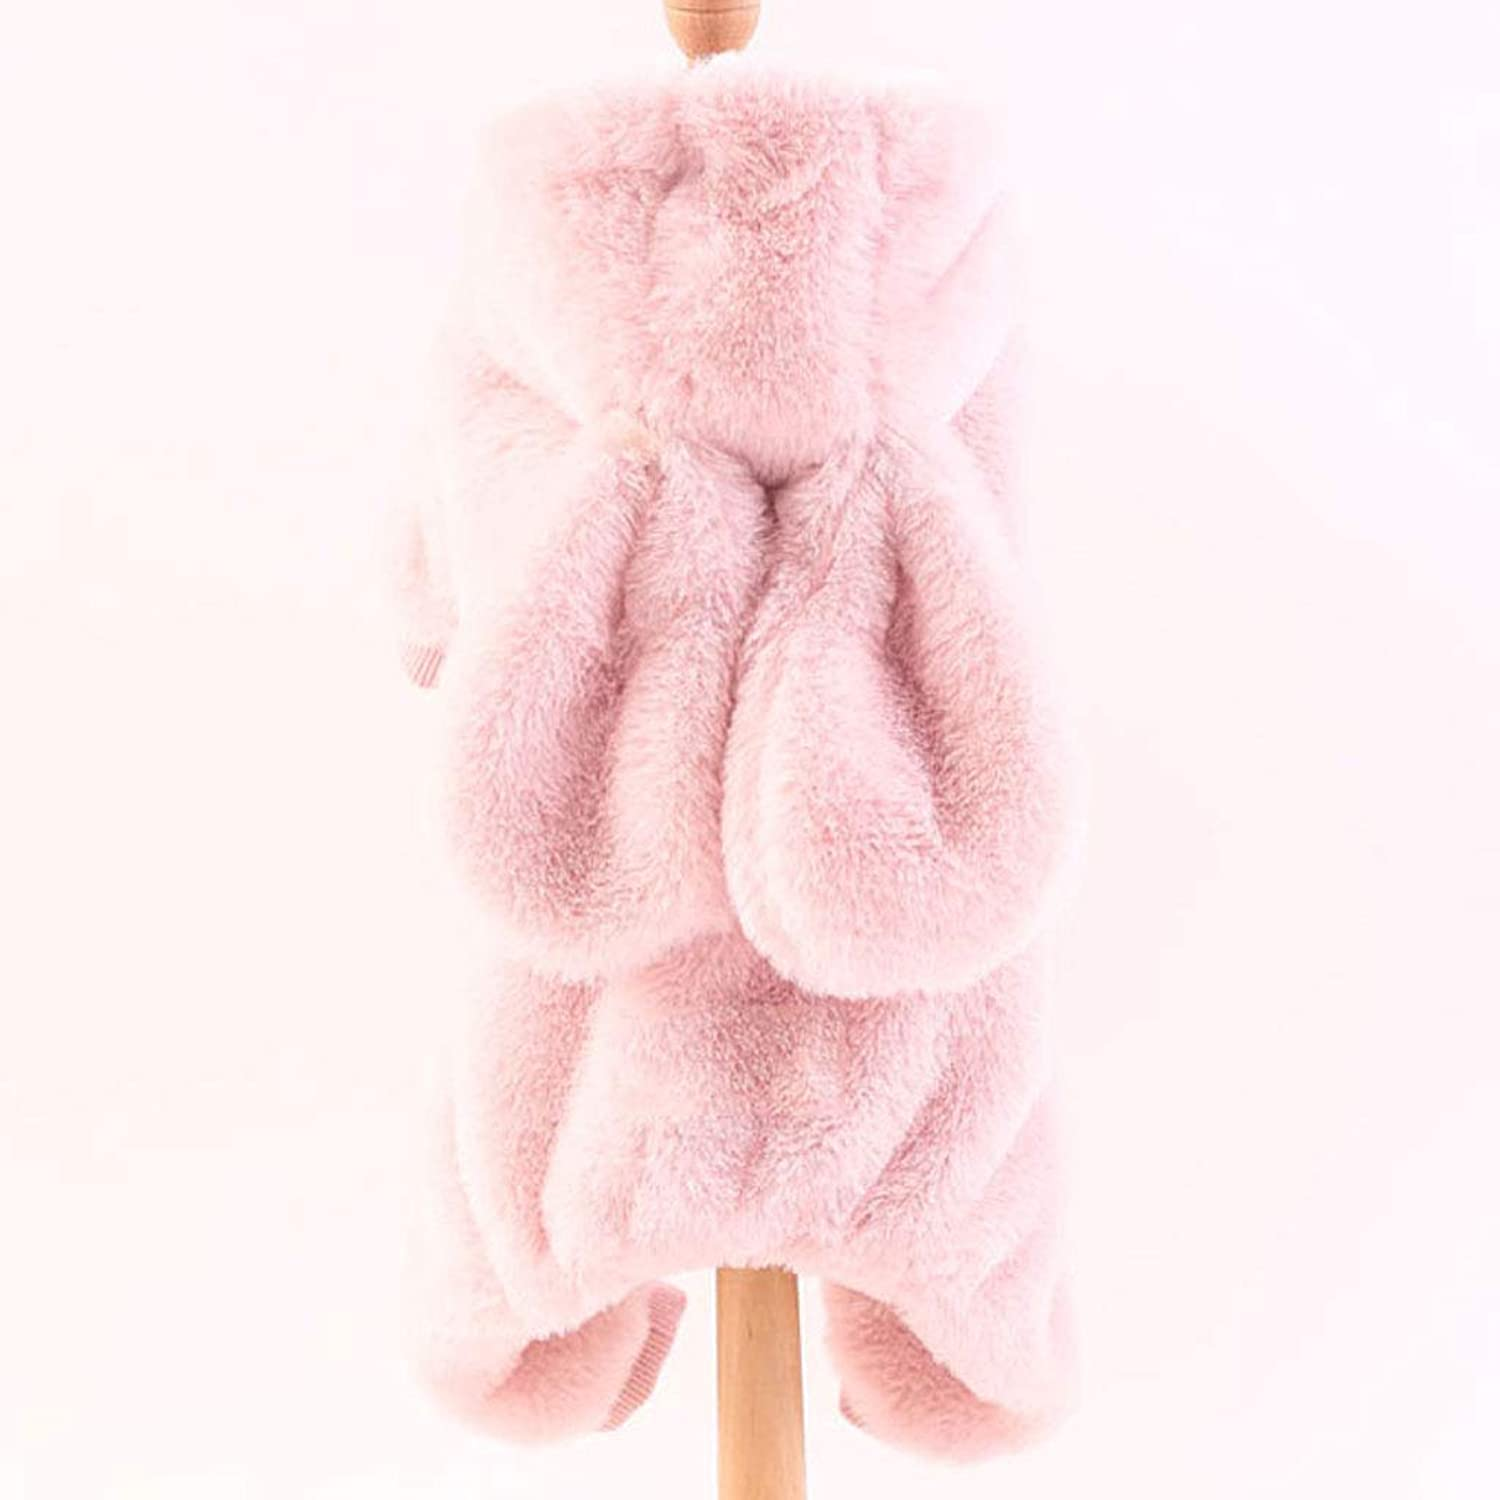 Pet Dog Clothes Autumn and Winter Wear Thick Female Teddy Bear Law Fighting Keji Small Dog Four Foot Clothes (color   Pink, Size   10)